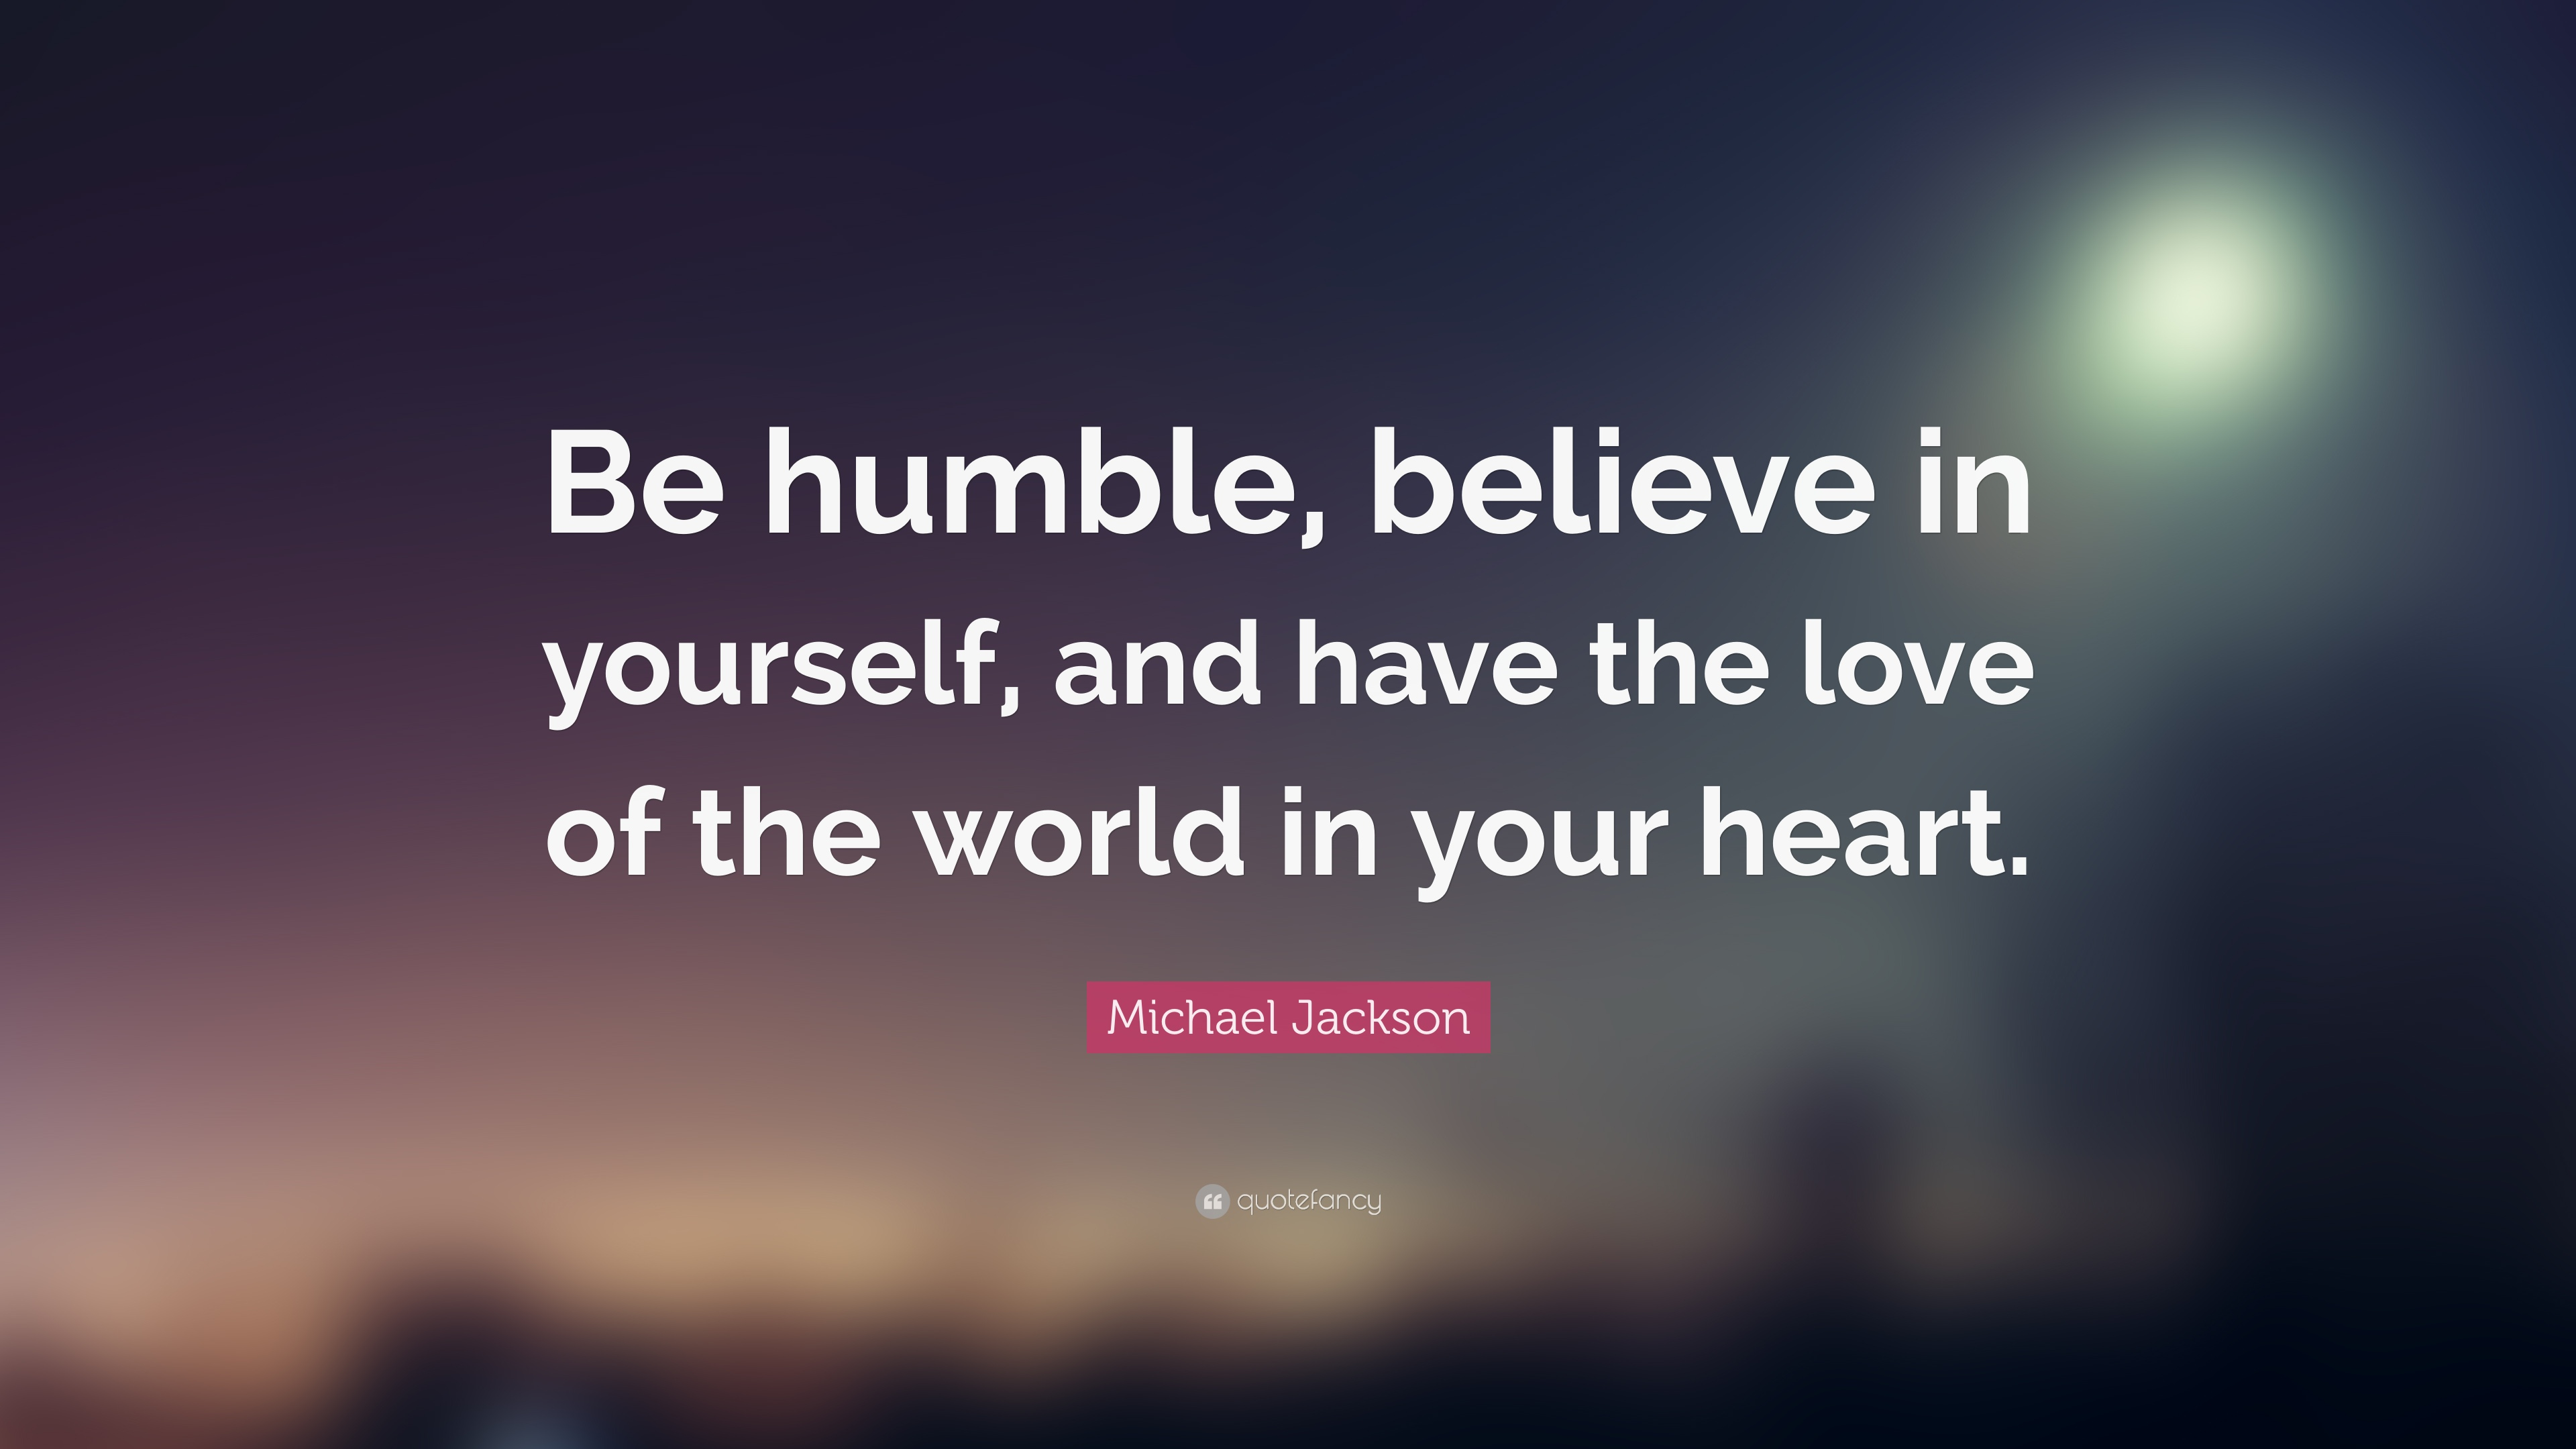 Be humble, believe in yourself, and have the love of the world in your heart. Michael Jackson